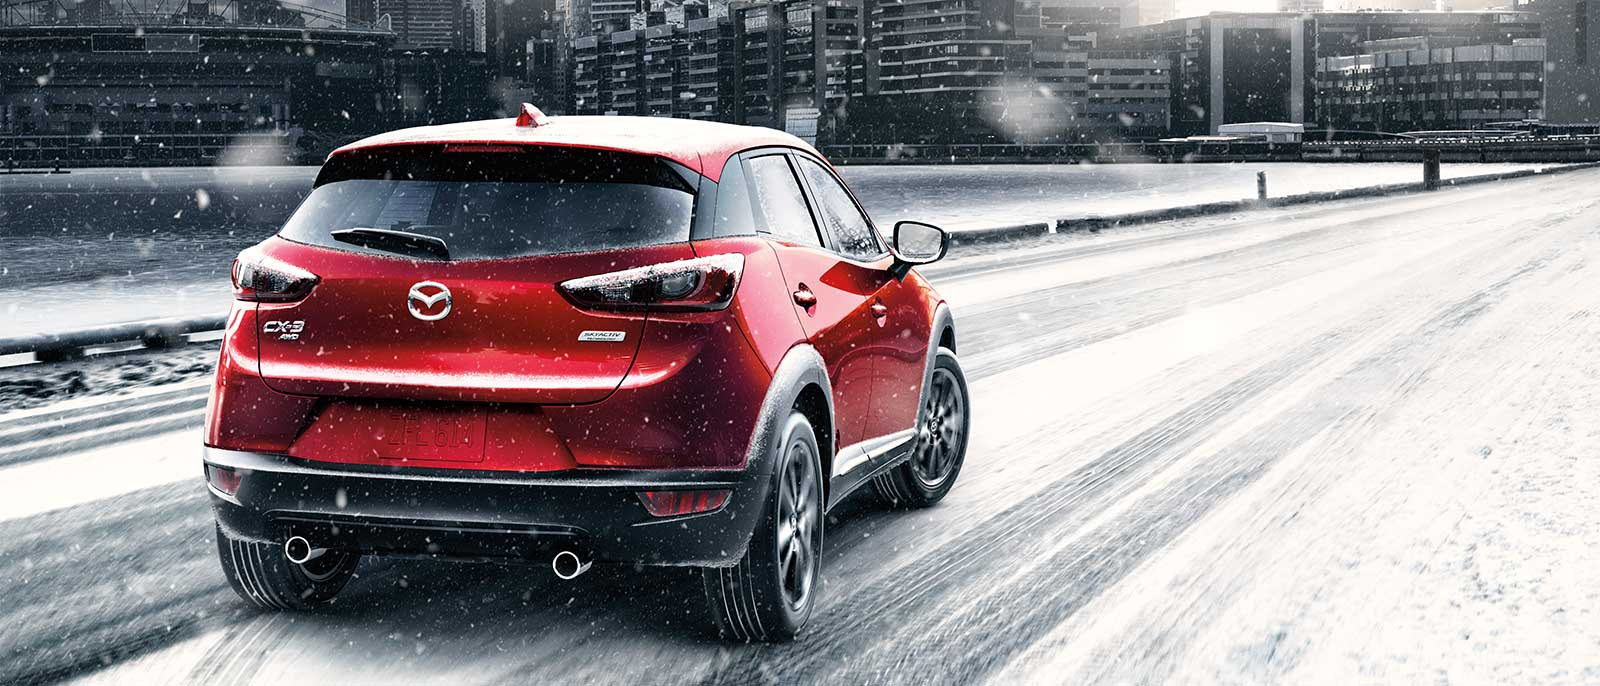 2017 Mazda CX-3 rear view in red